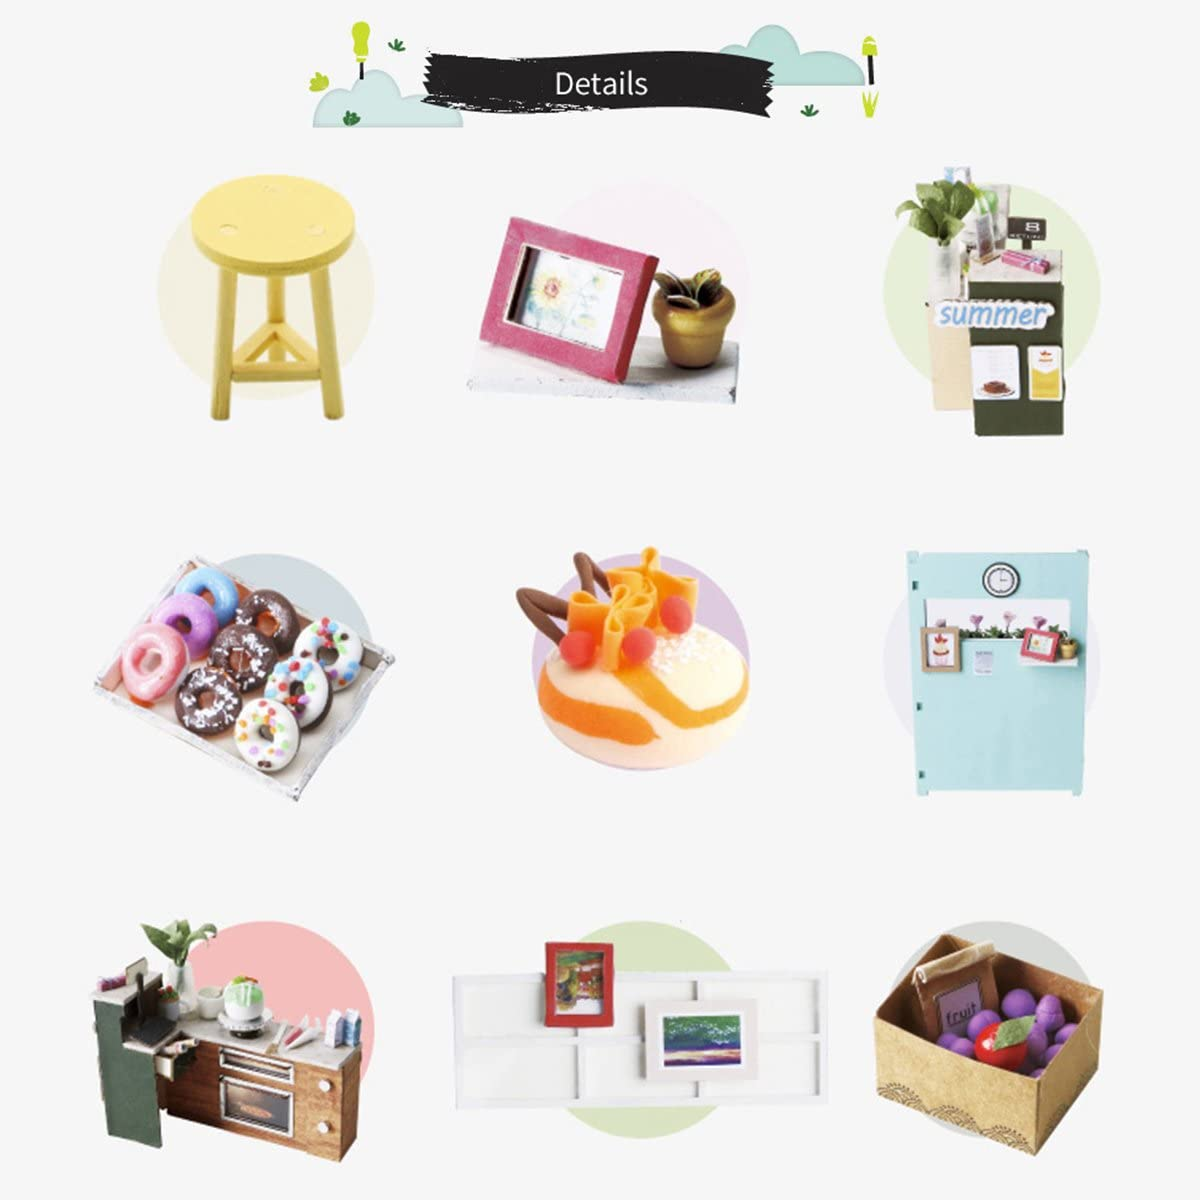 Mini House Kits with English Instructions Best Birthday Gifts for Boys /& Girls Creative Room Decorations Ice Cream Station ROBOTIME DIY Miniature Doll House with Accessories